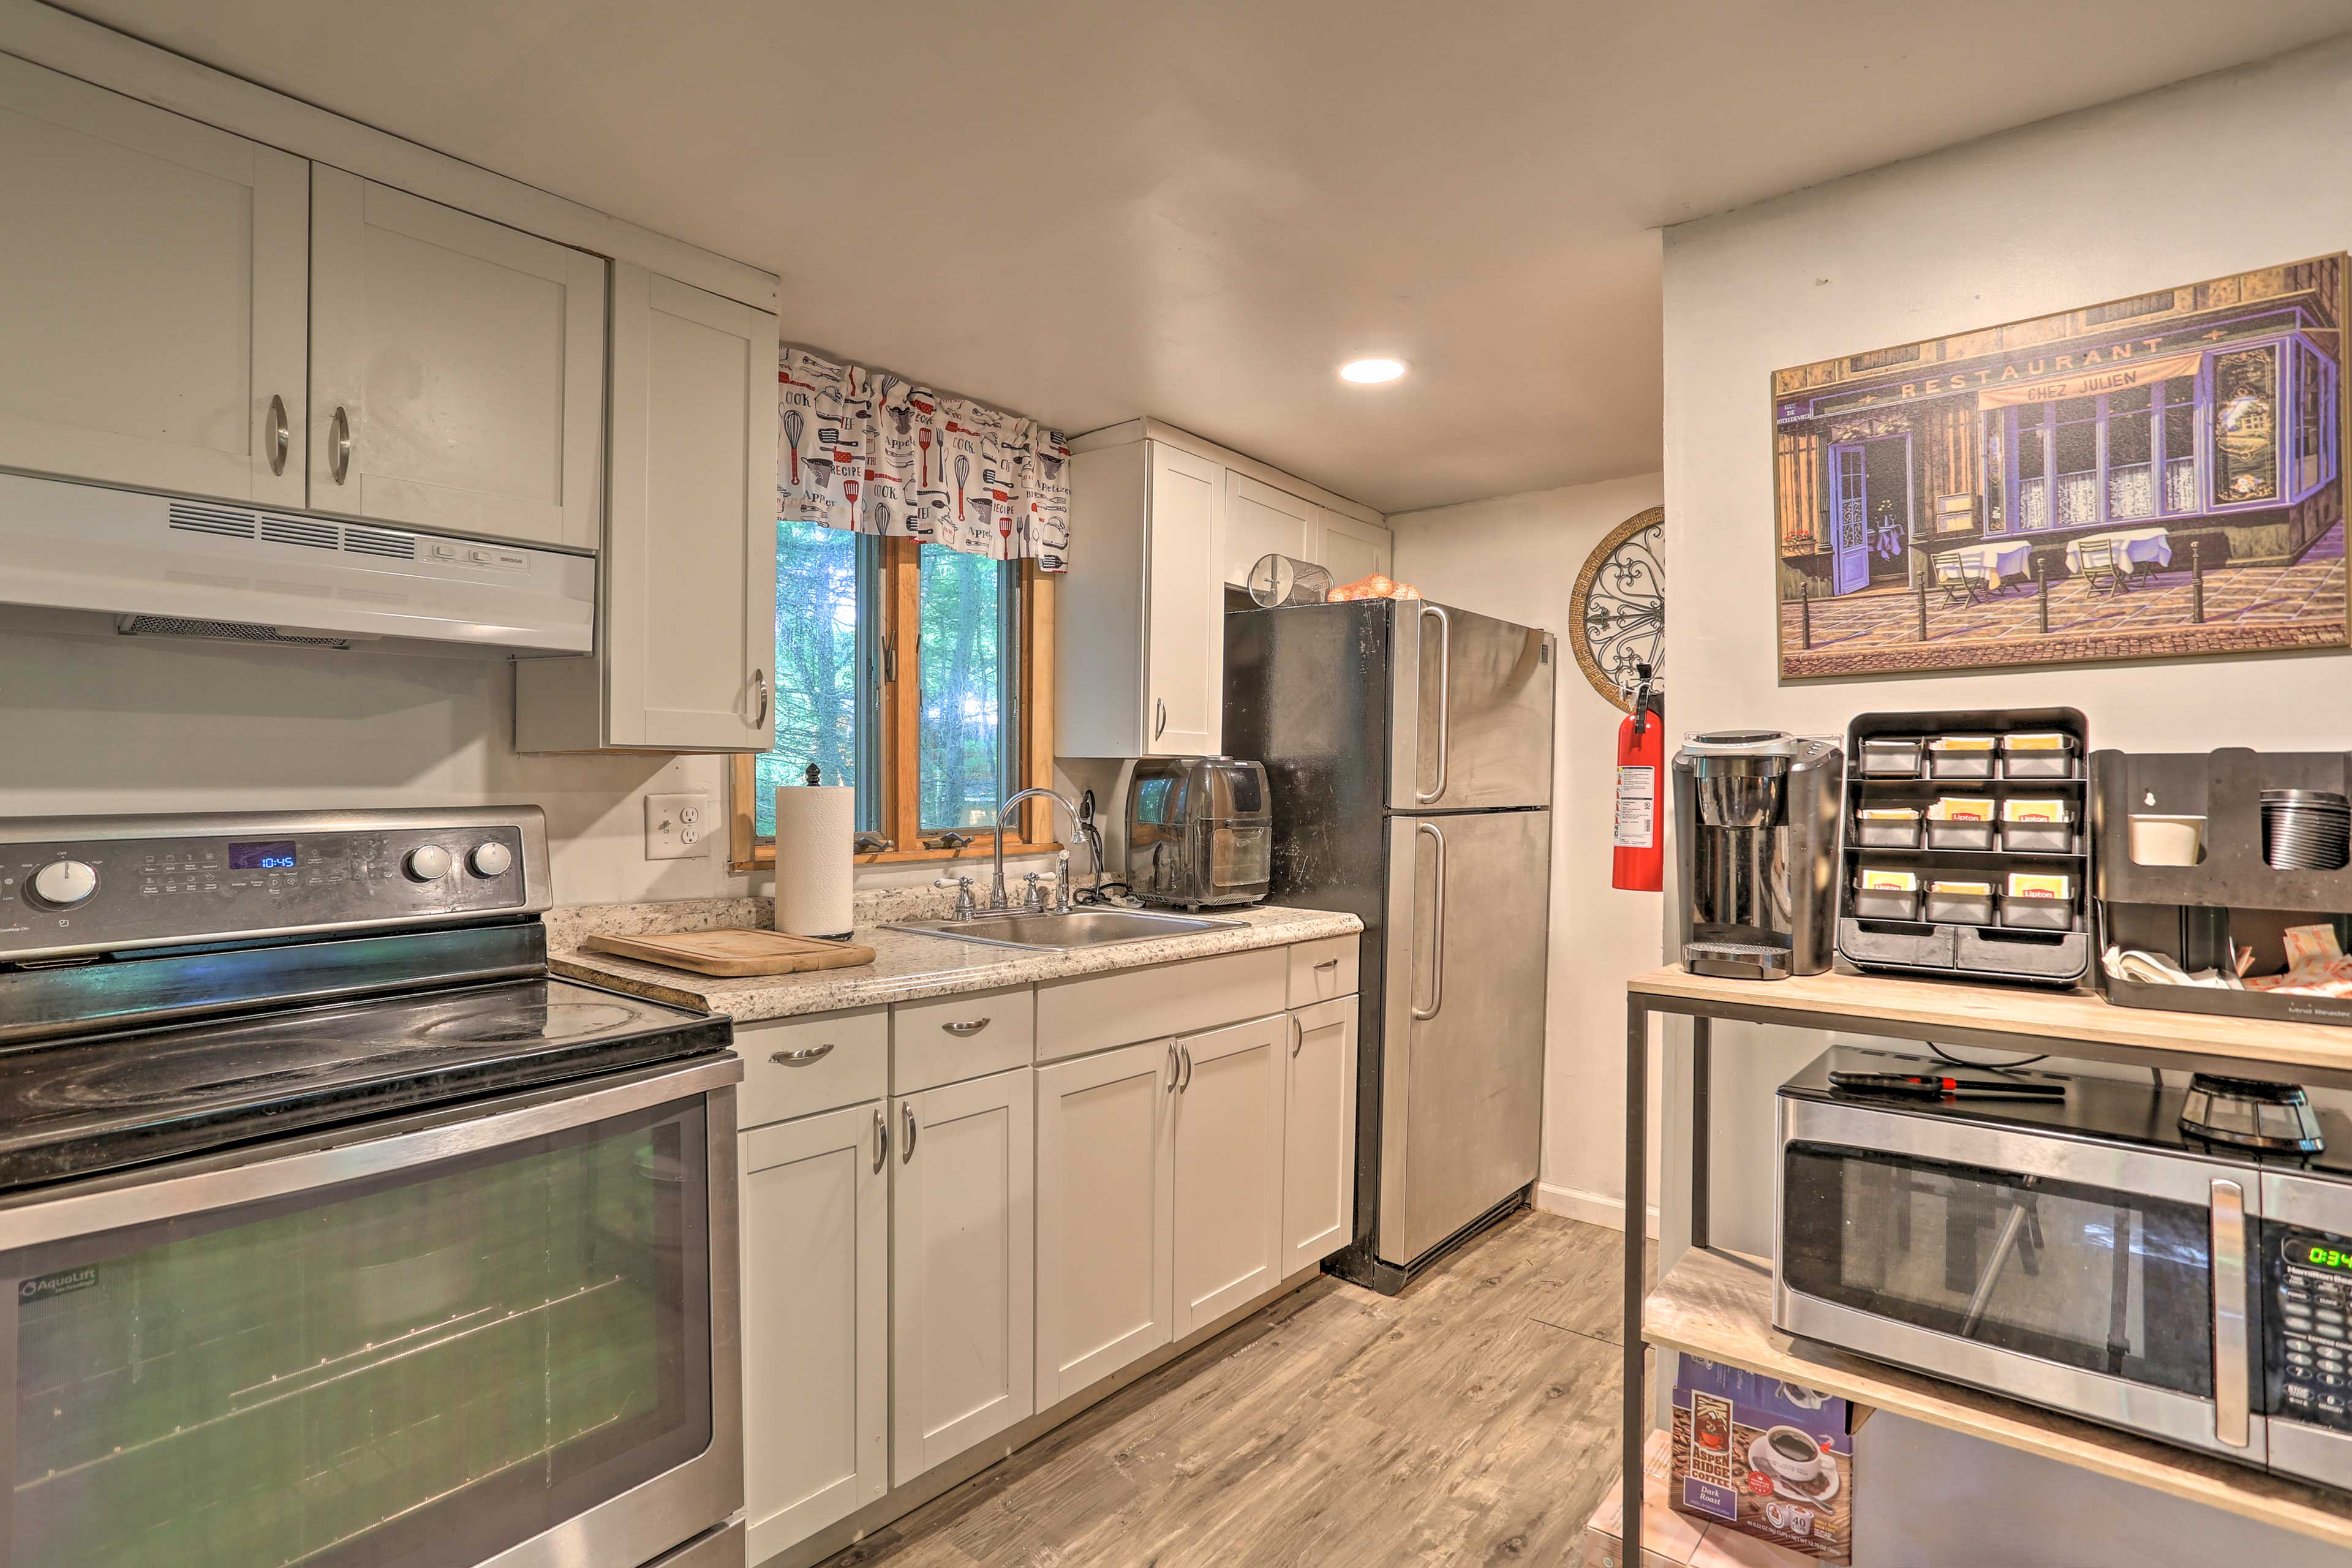 The kitchen has stainless steel appliances for the at-home chef.